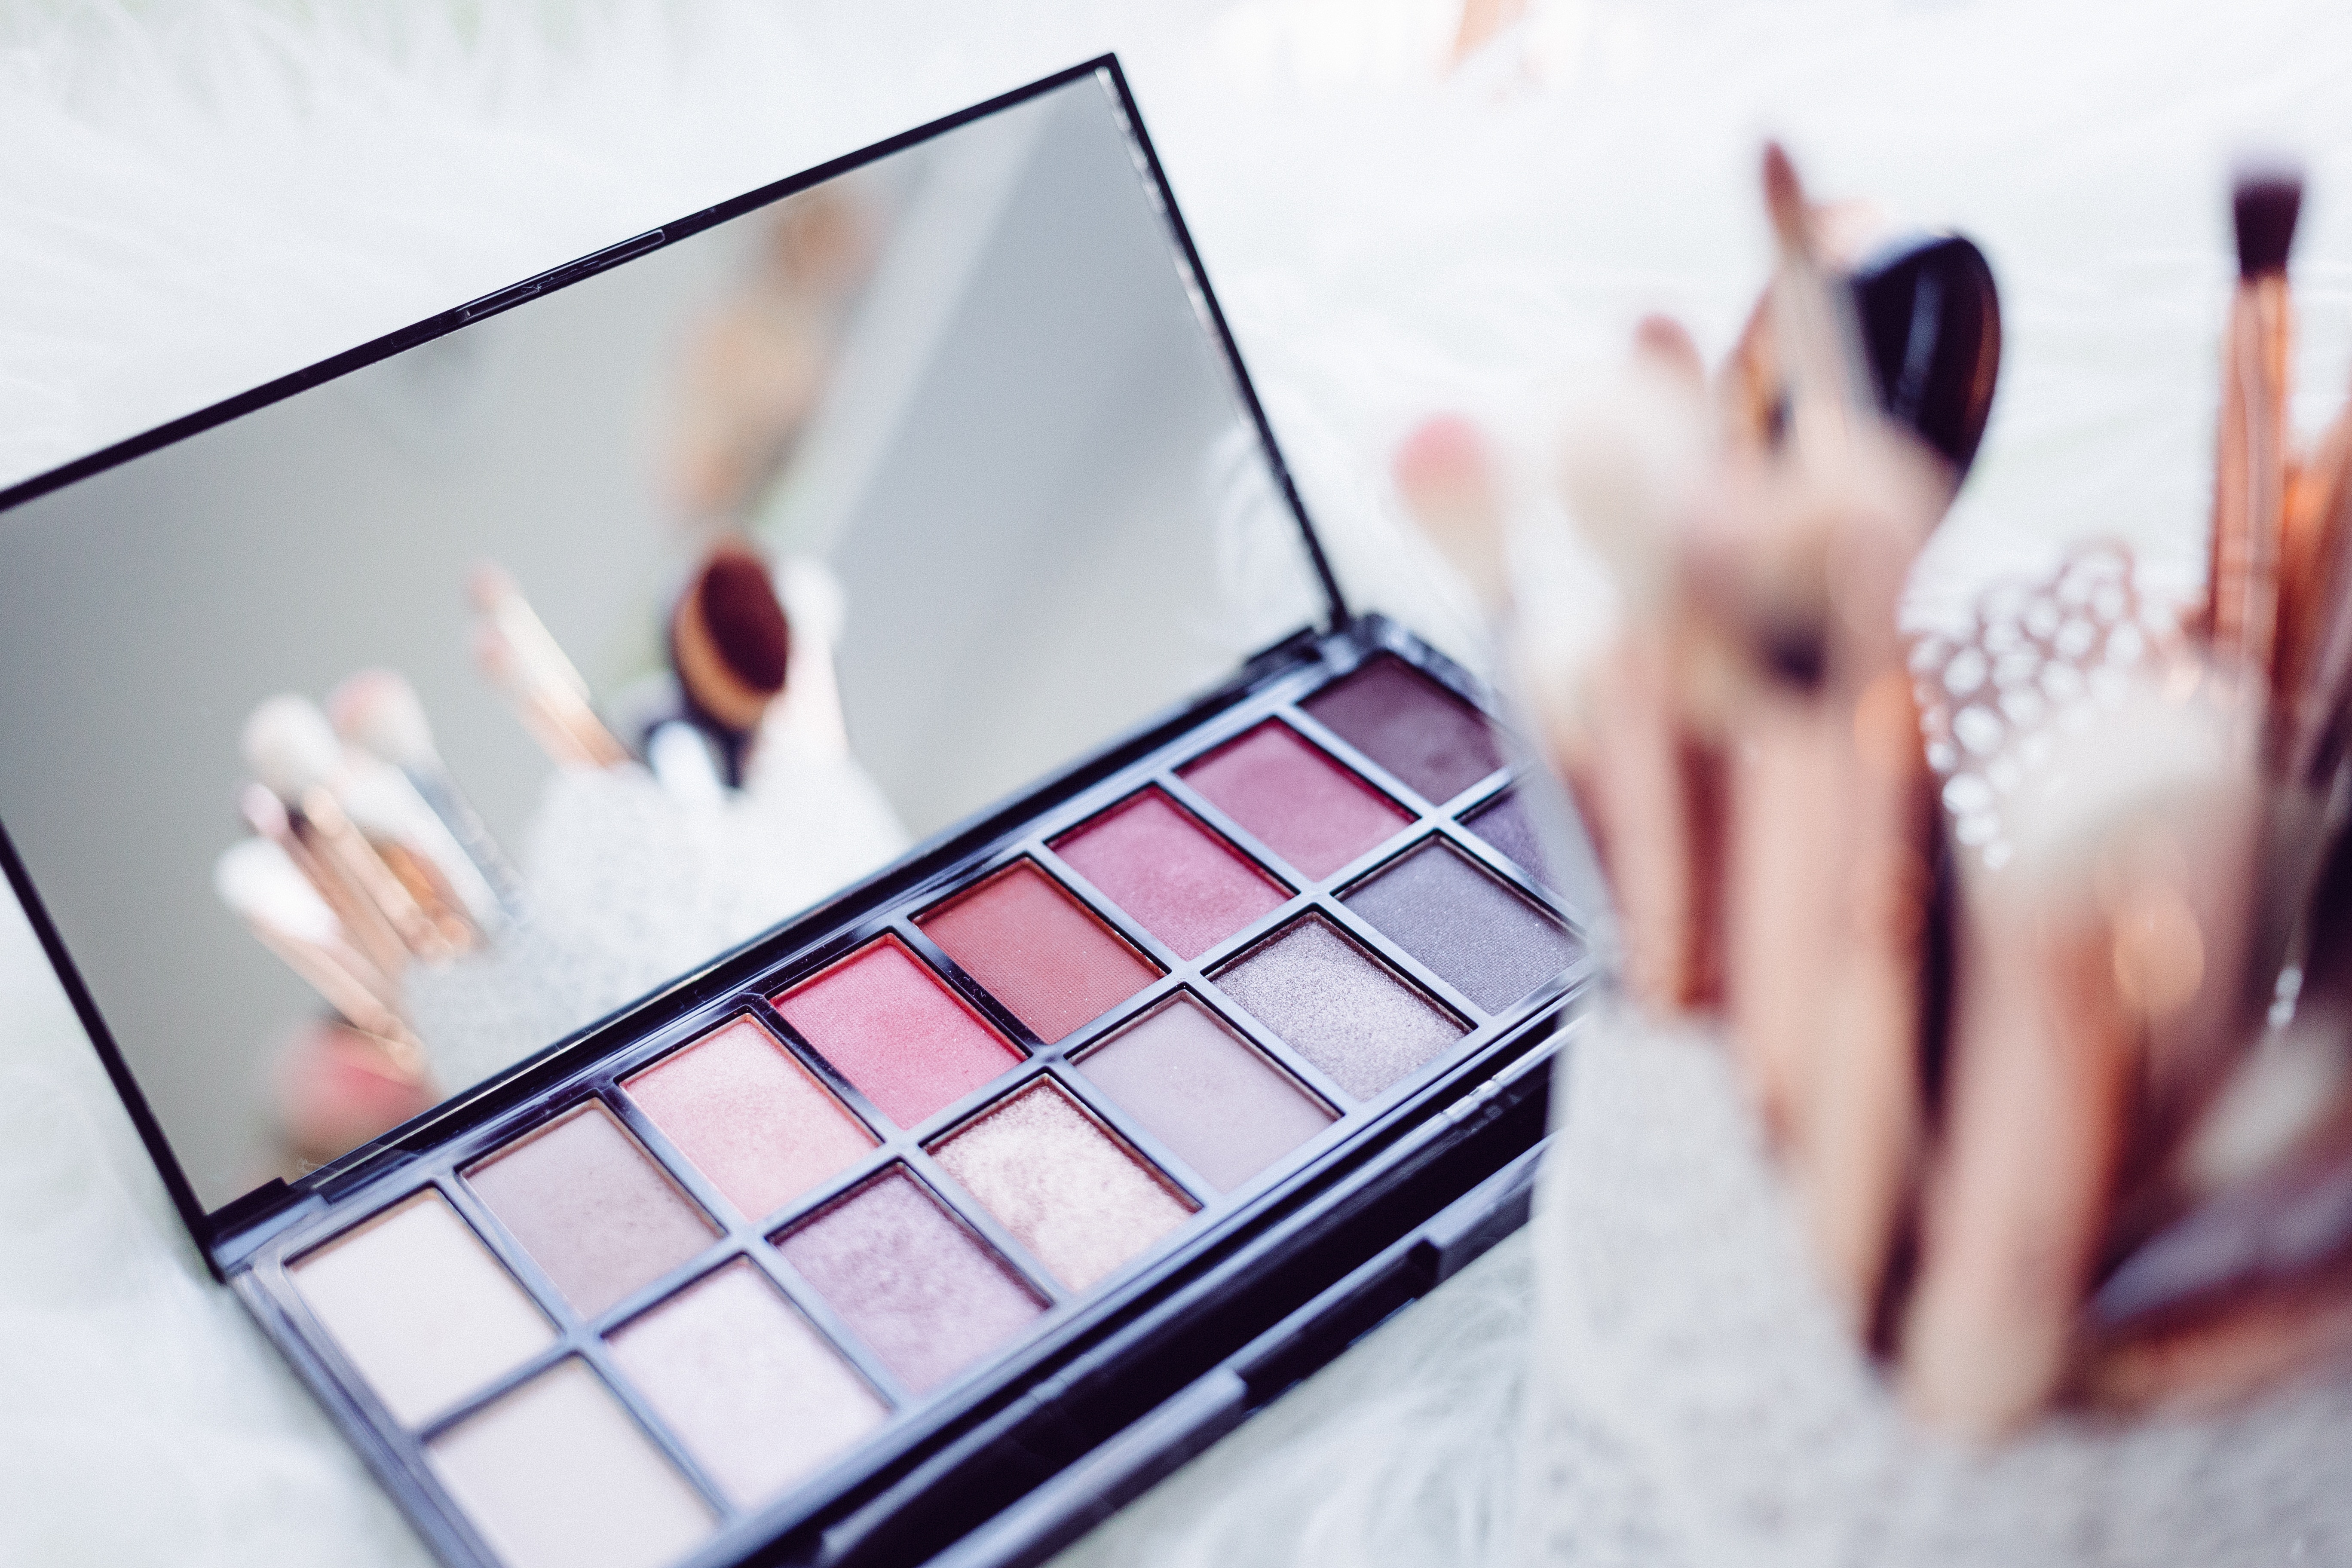 IMPORTANCE OF PURCHASING CRUELTY-FREE PRODUCTS